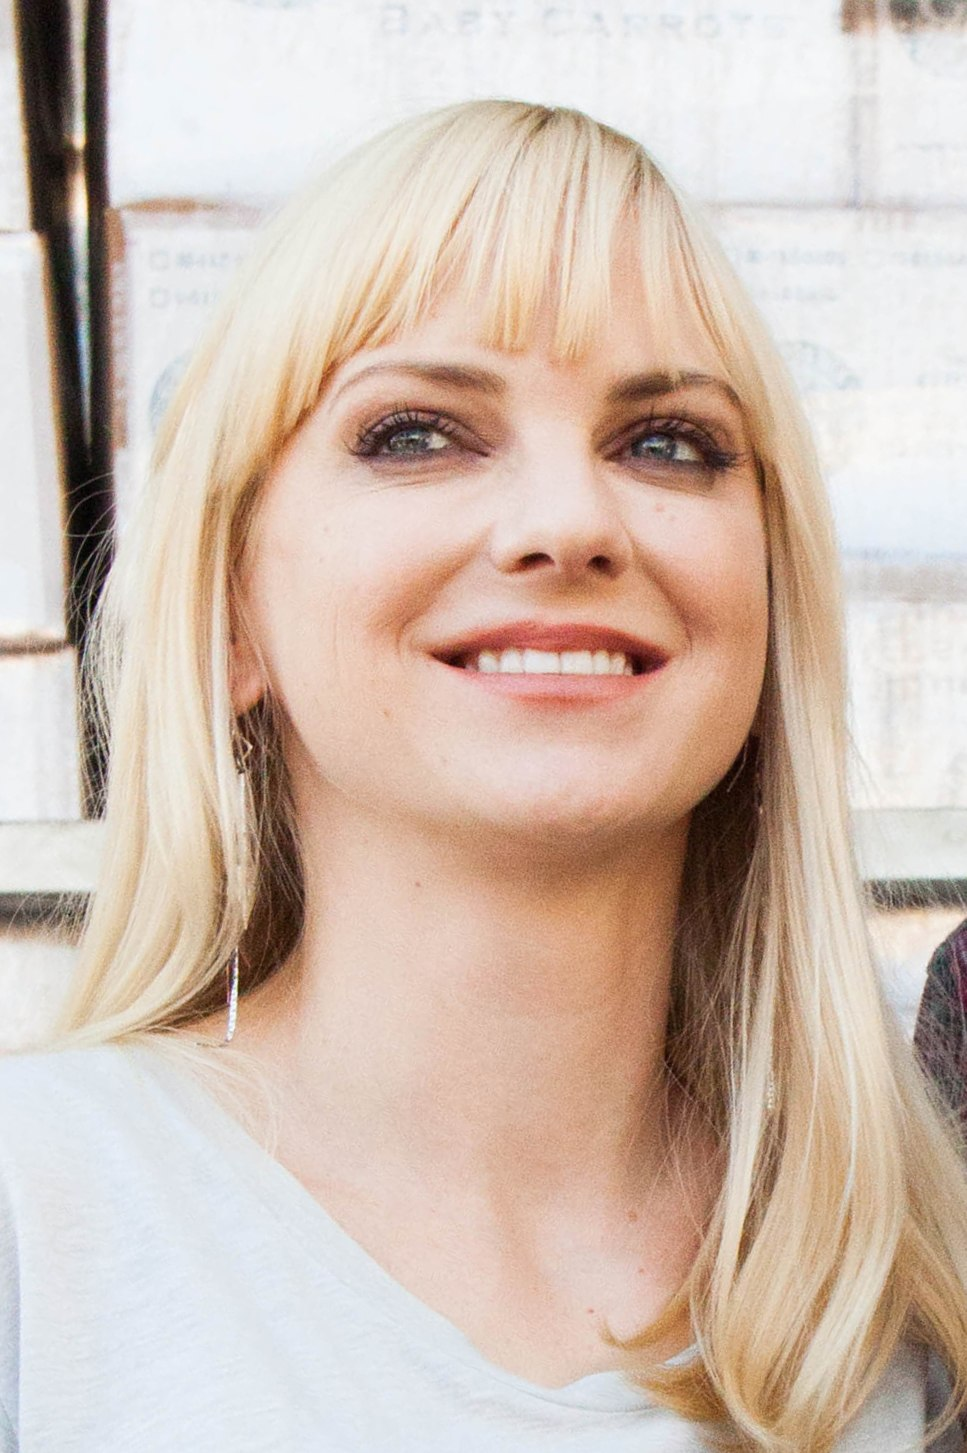 Feed America, Cloudy with a Chance of Meatballs 2, Anna Faris (cropped)